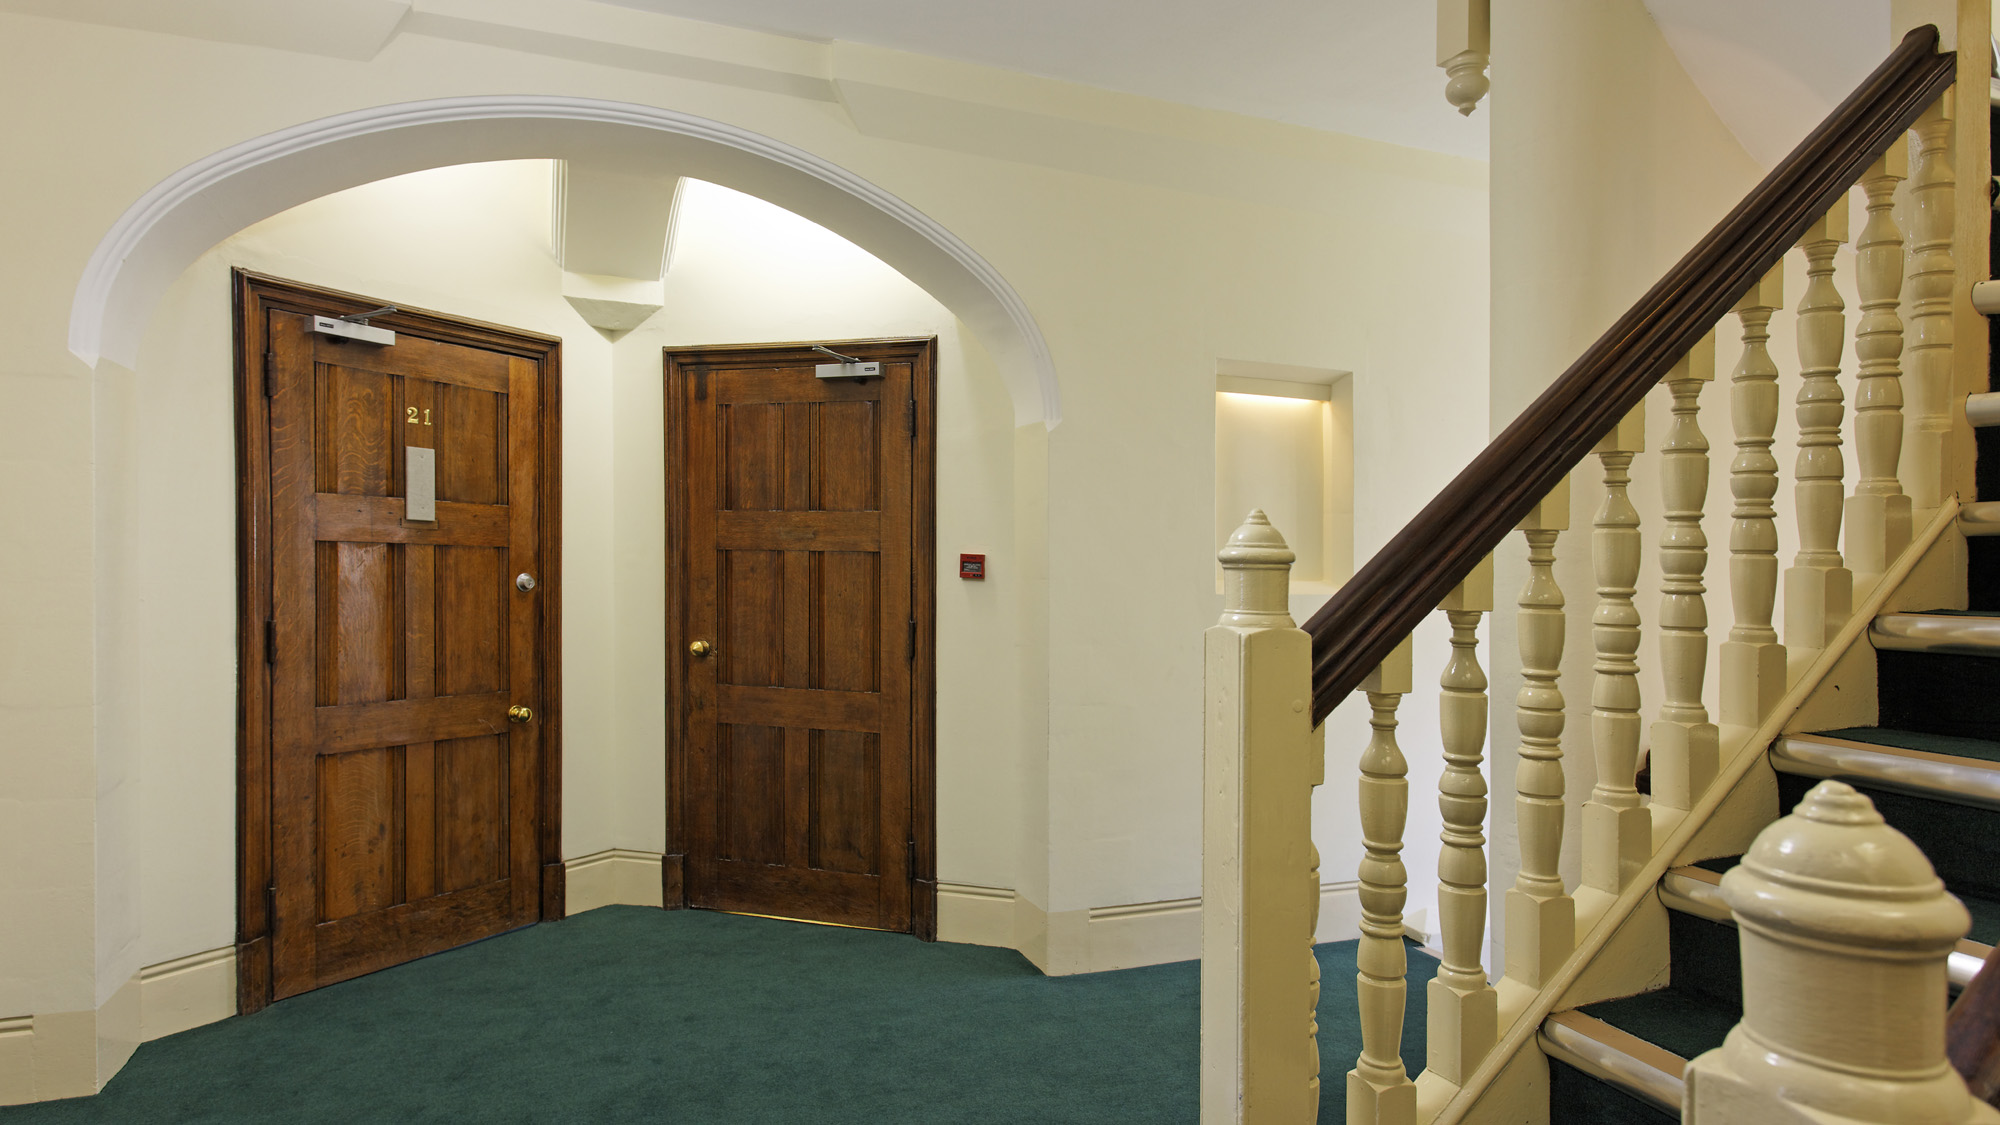 Student Accommodation Refurbishment Trinity College Gbs